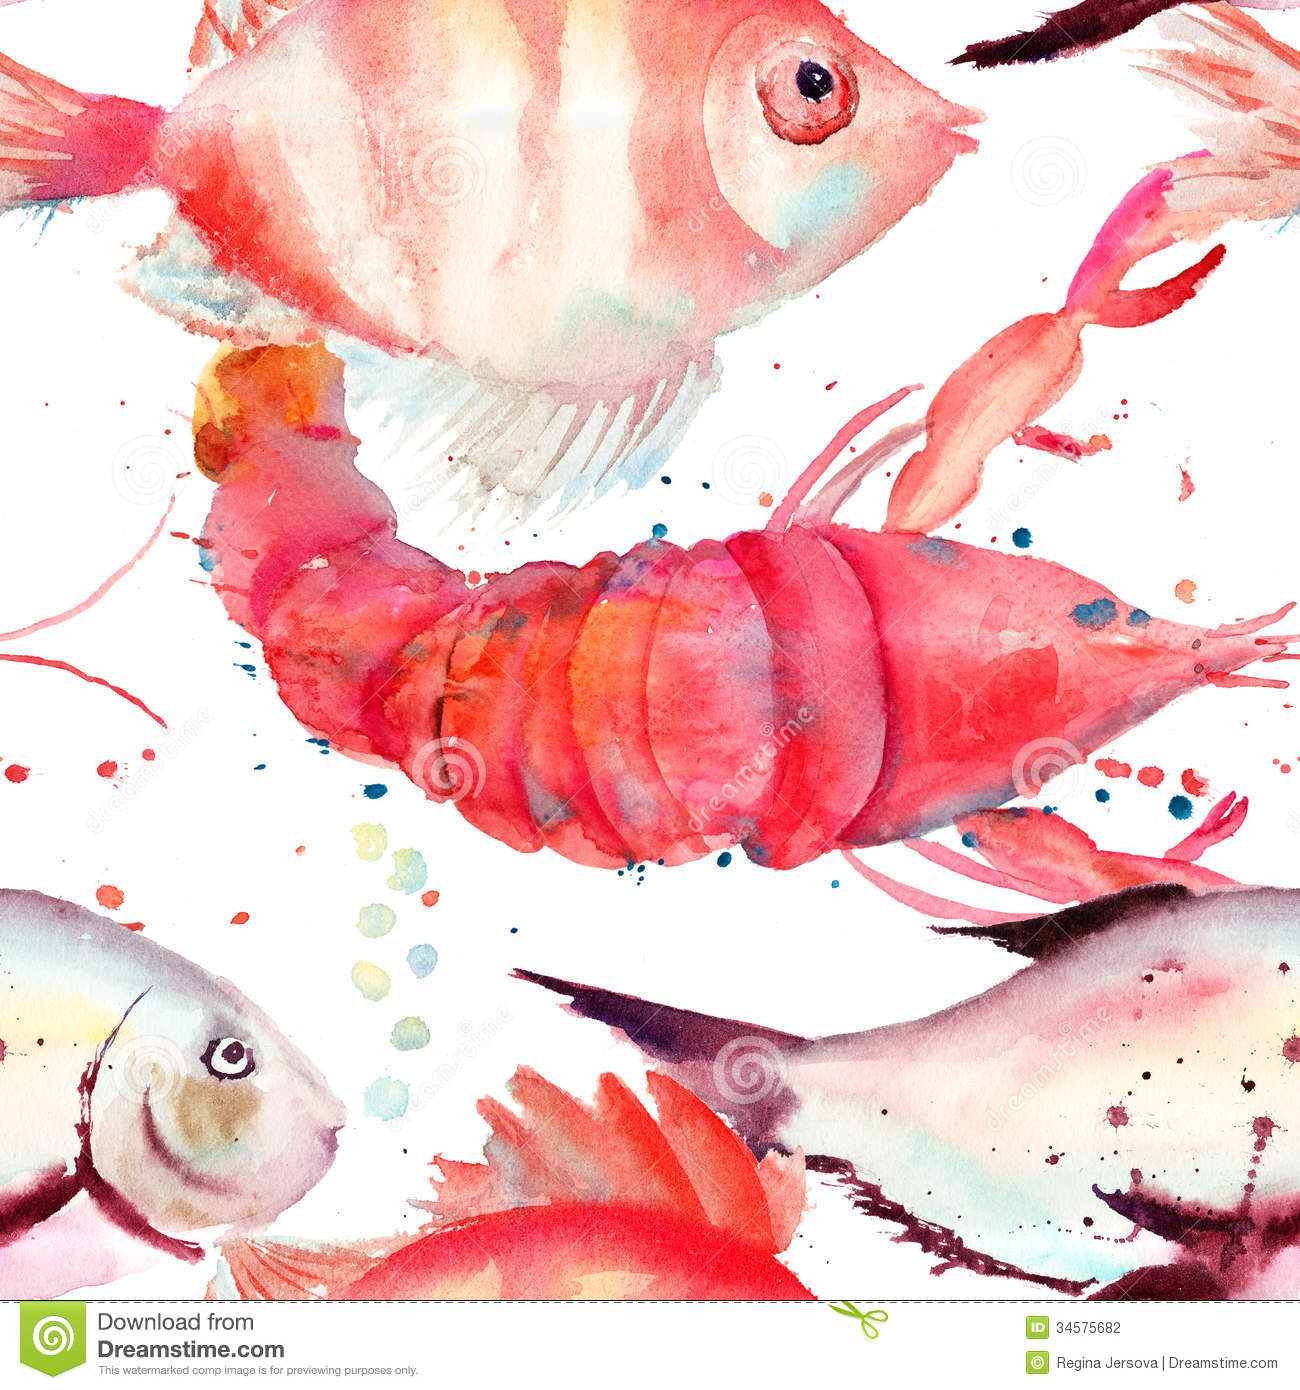 Watercolor Illustration Of Lobster And Fish Stock Illustration ...